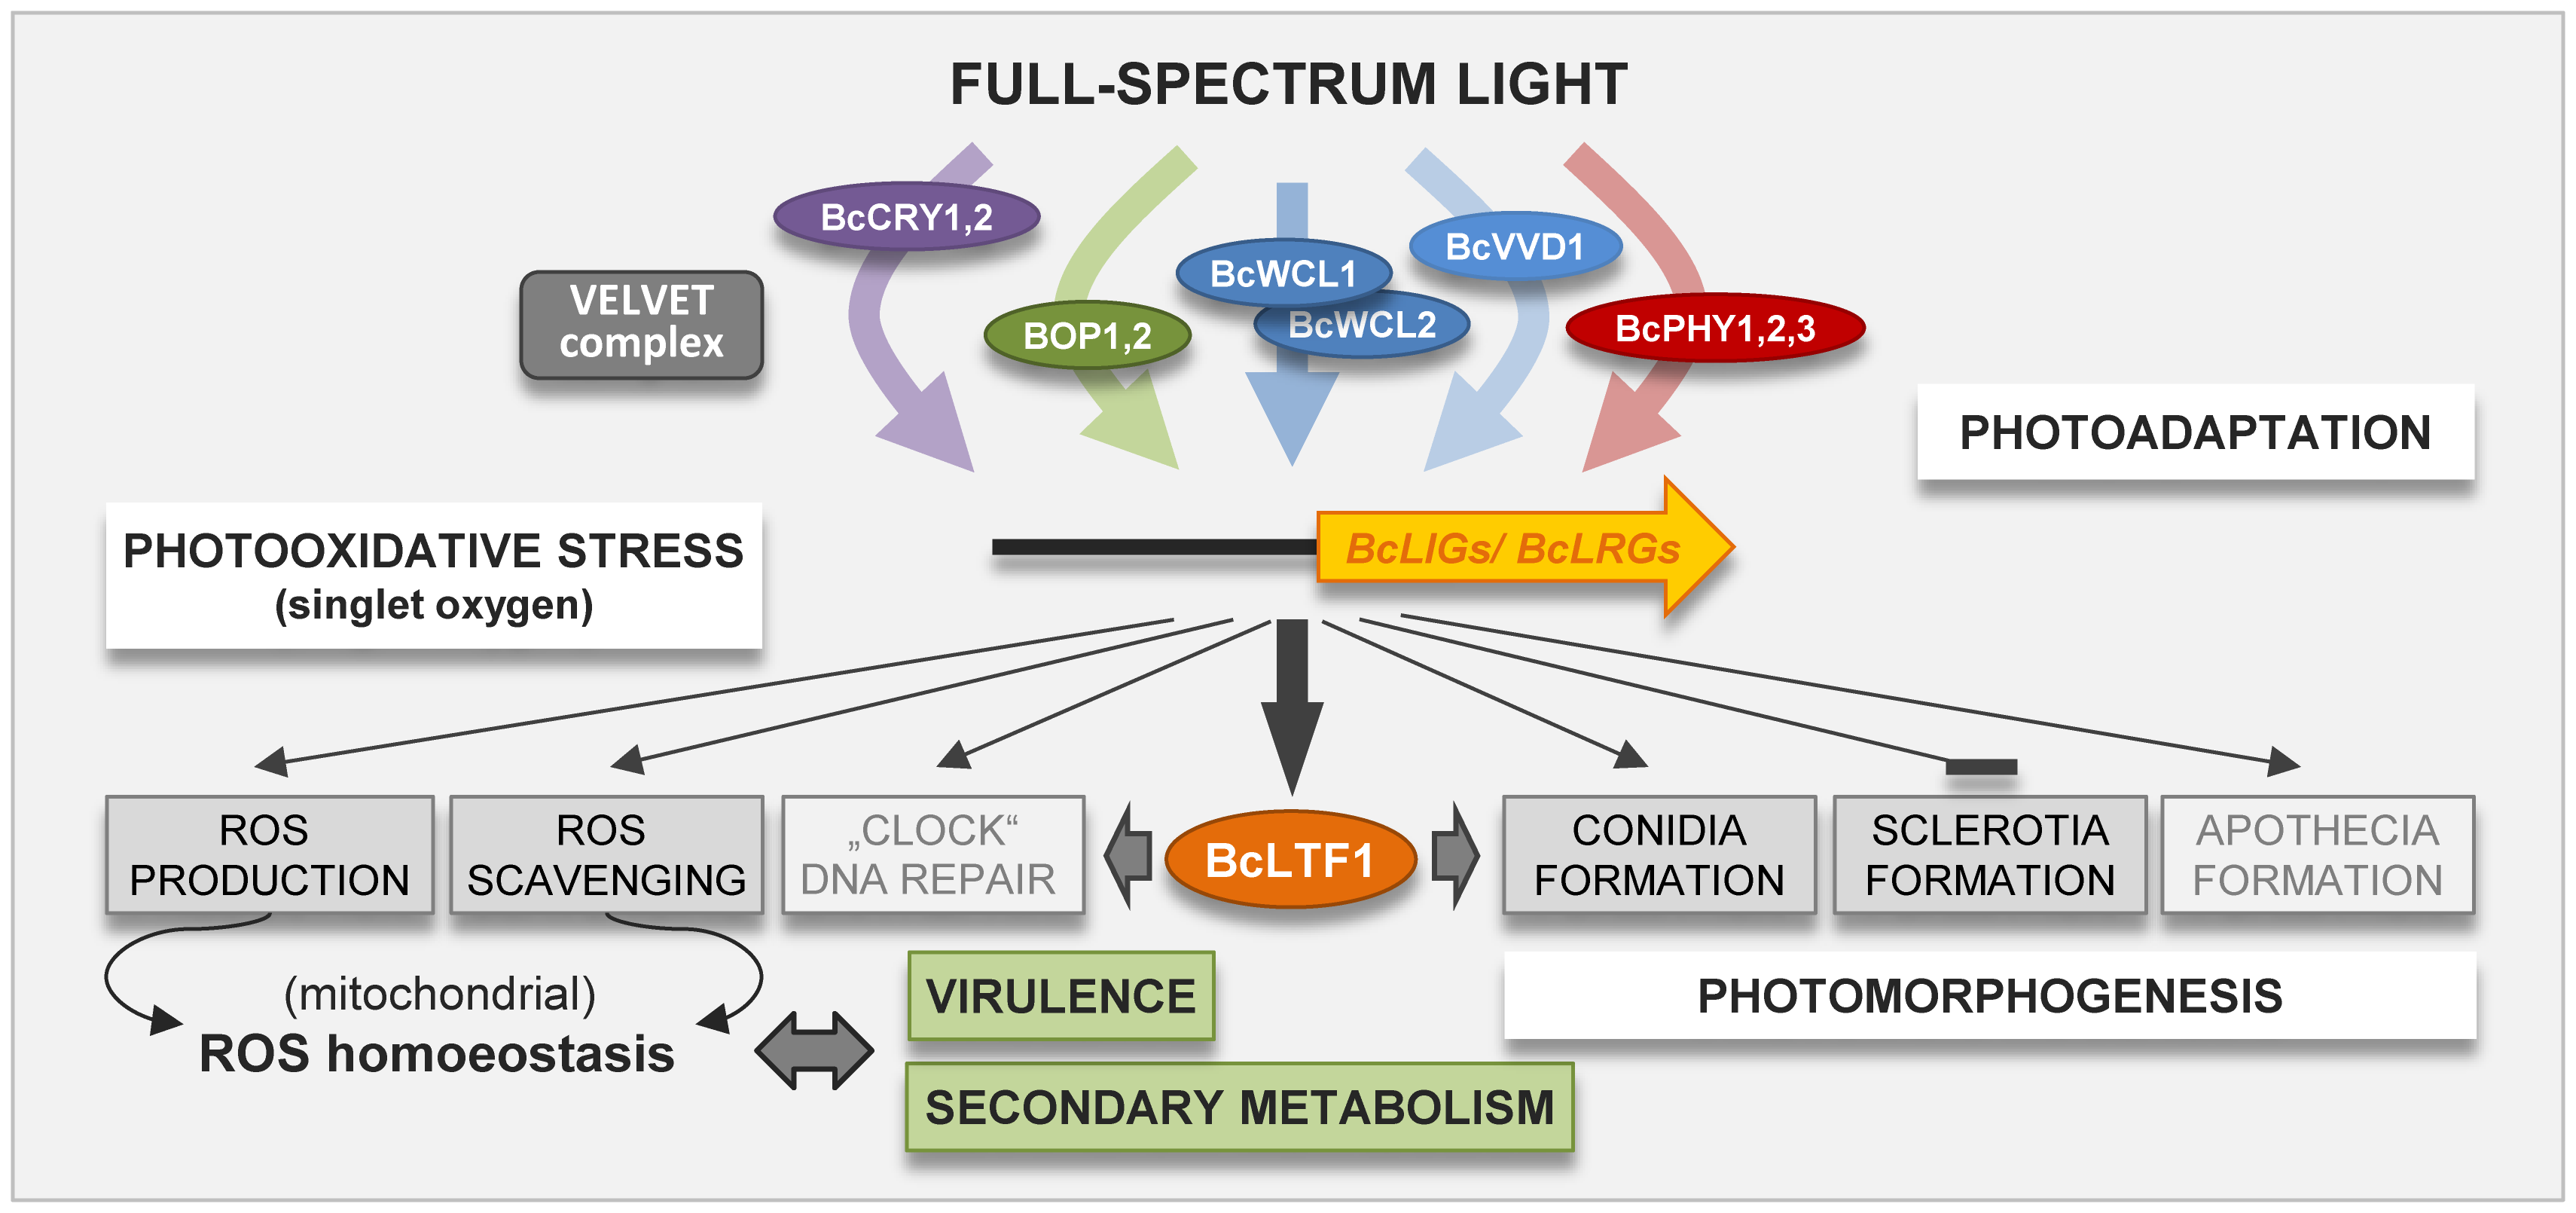 Photoresponses in <i>B. cinerea</i> are modulated by the light-responsive transcription factor BcLTF1.